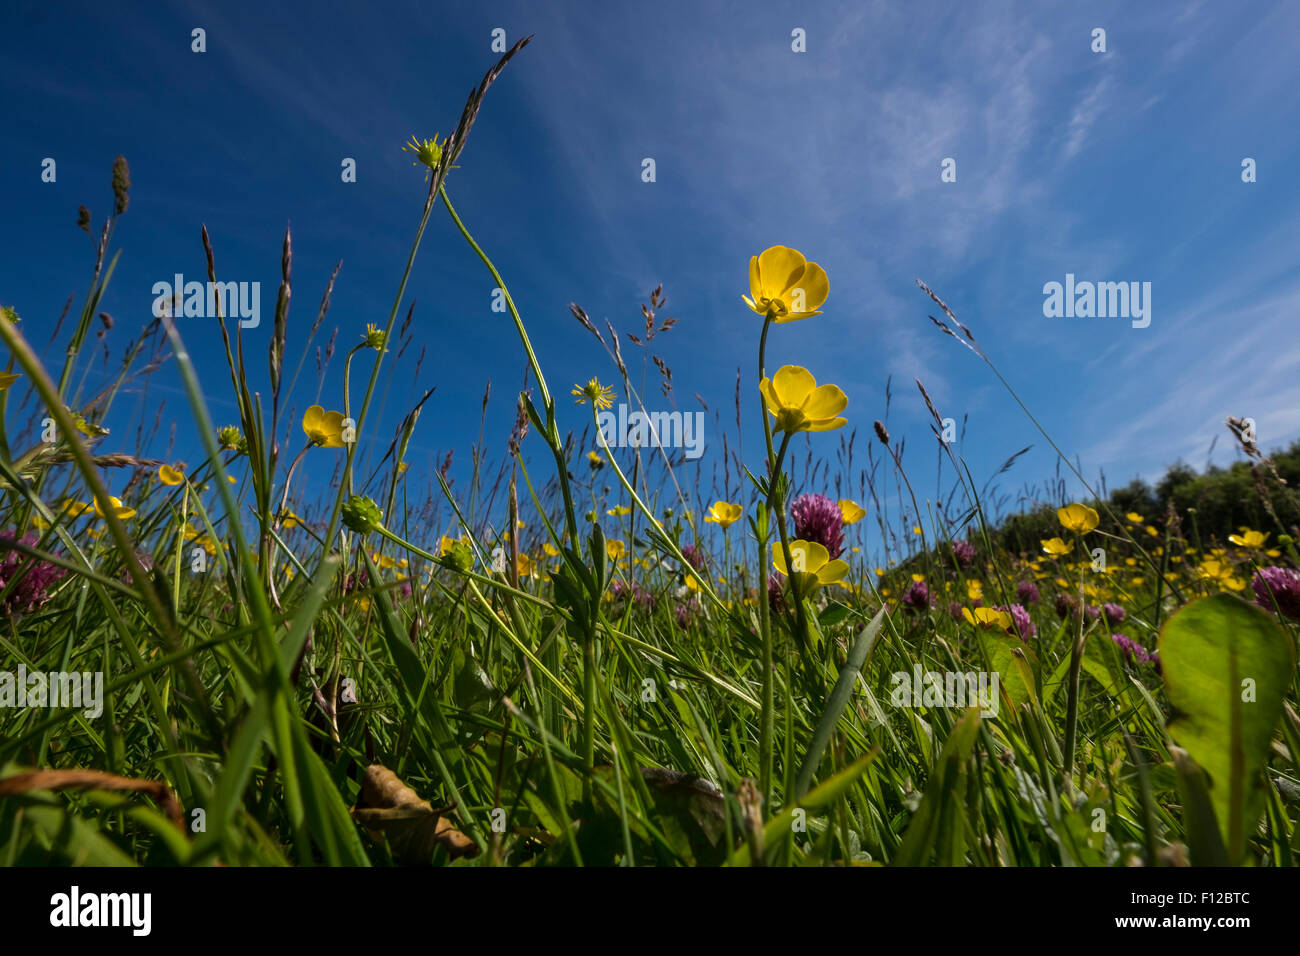 Worms eye view through summer wildflowers and grass to a blue sky. Corkagh park, Dublin, Ireland. - Stock Image